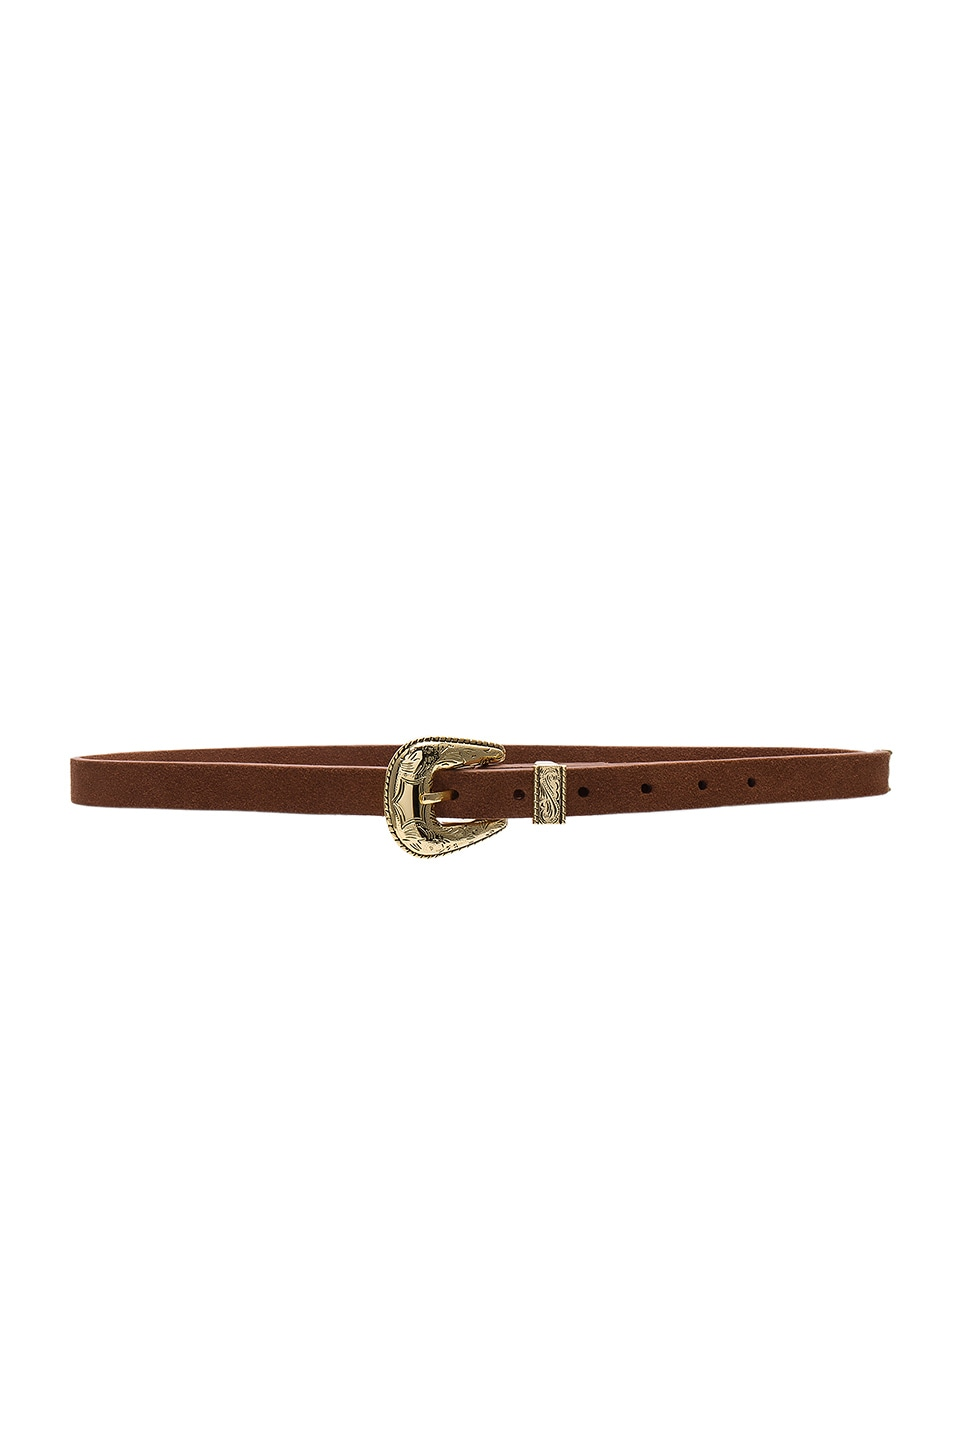 Baby Frank Suede Belt by B-Low the Belt